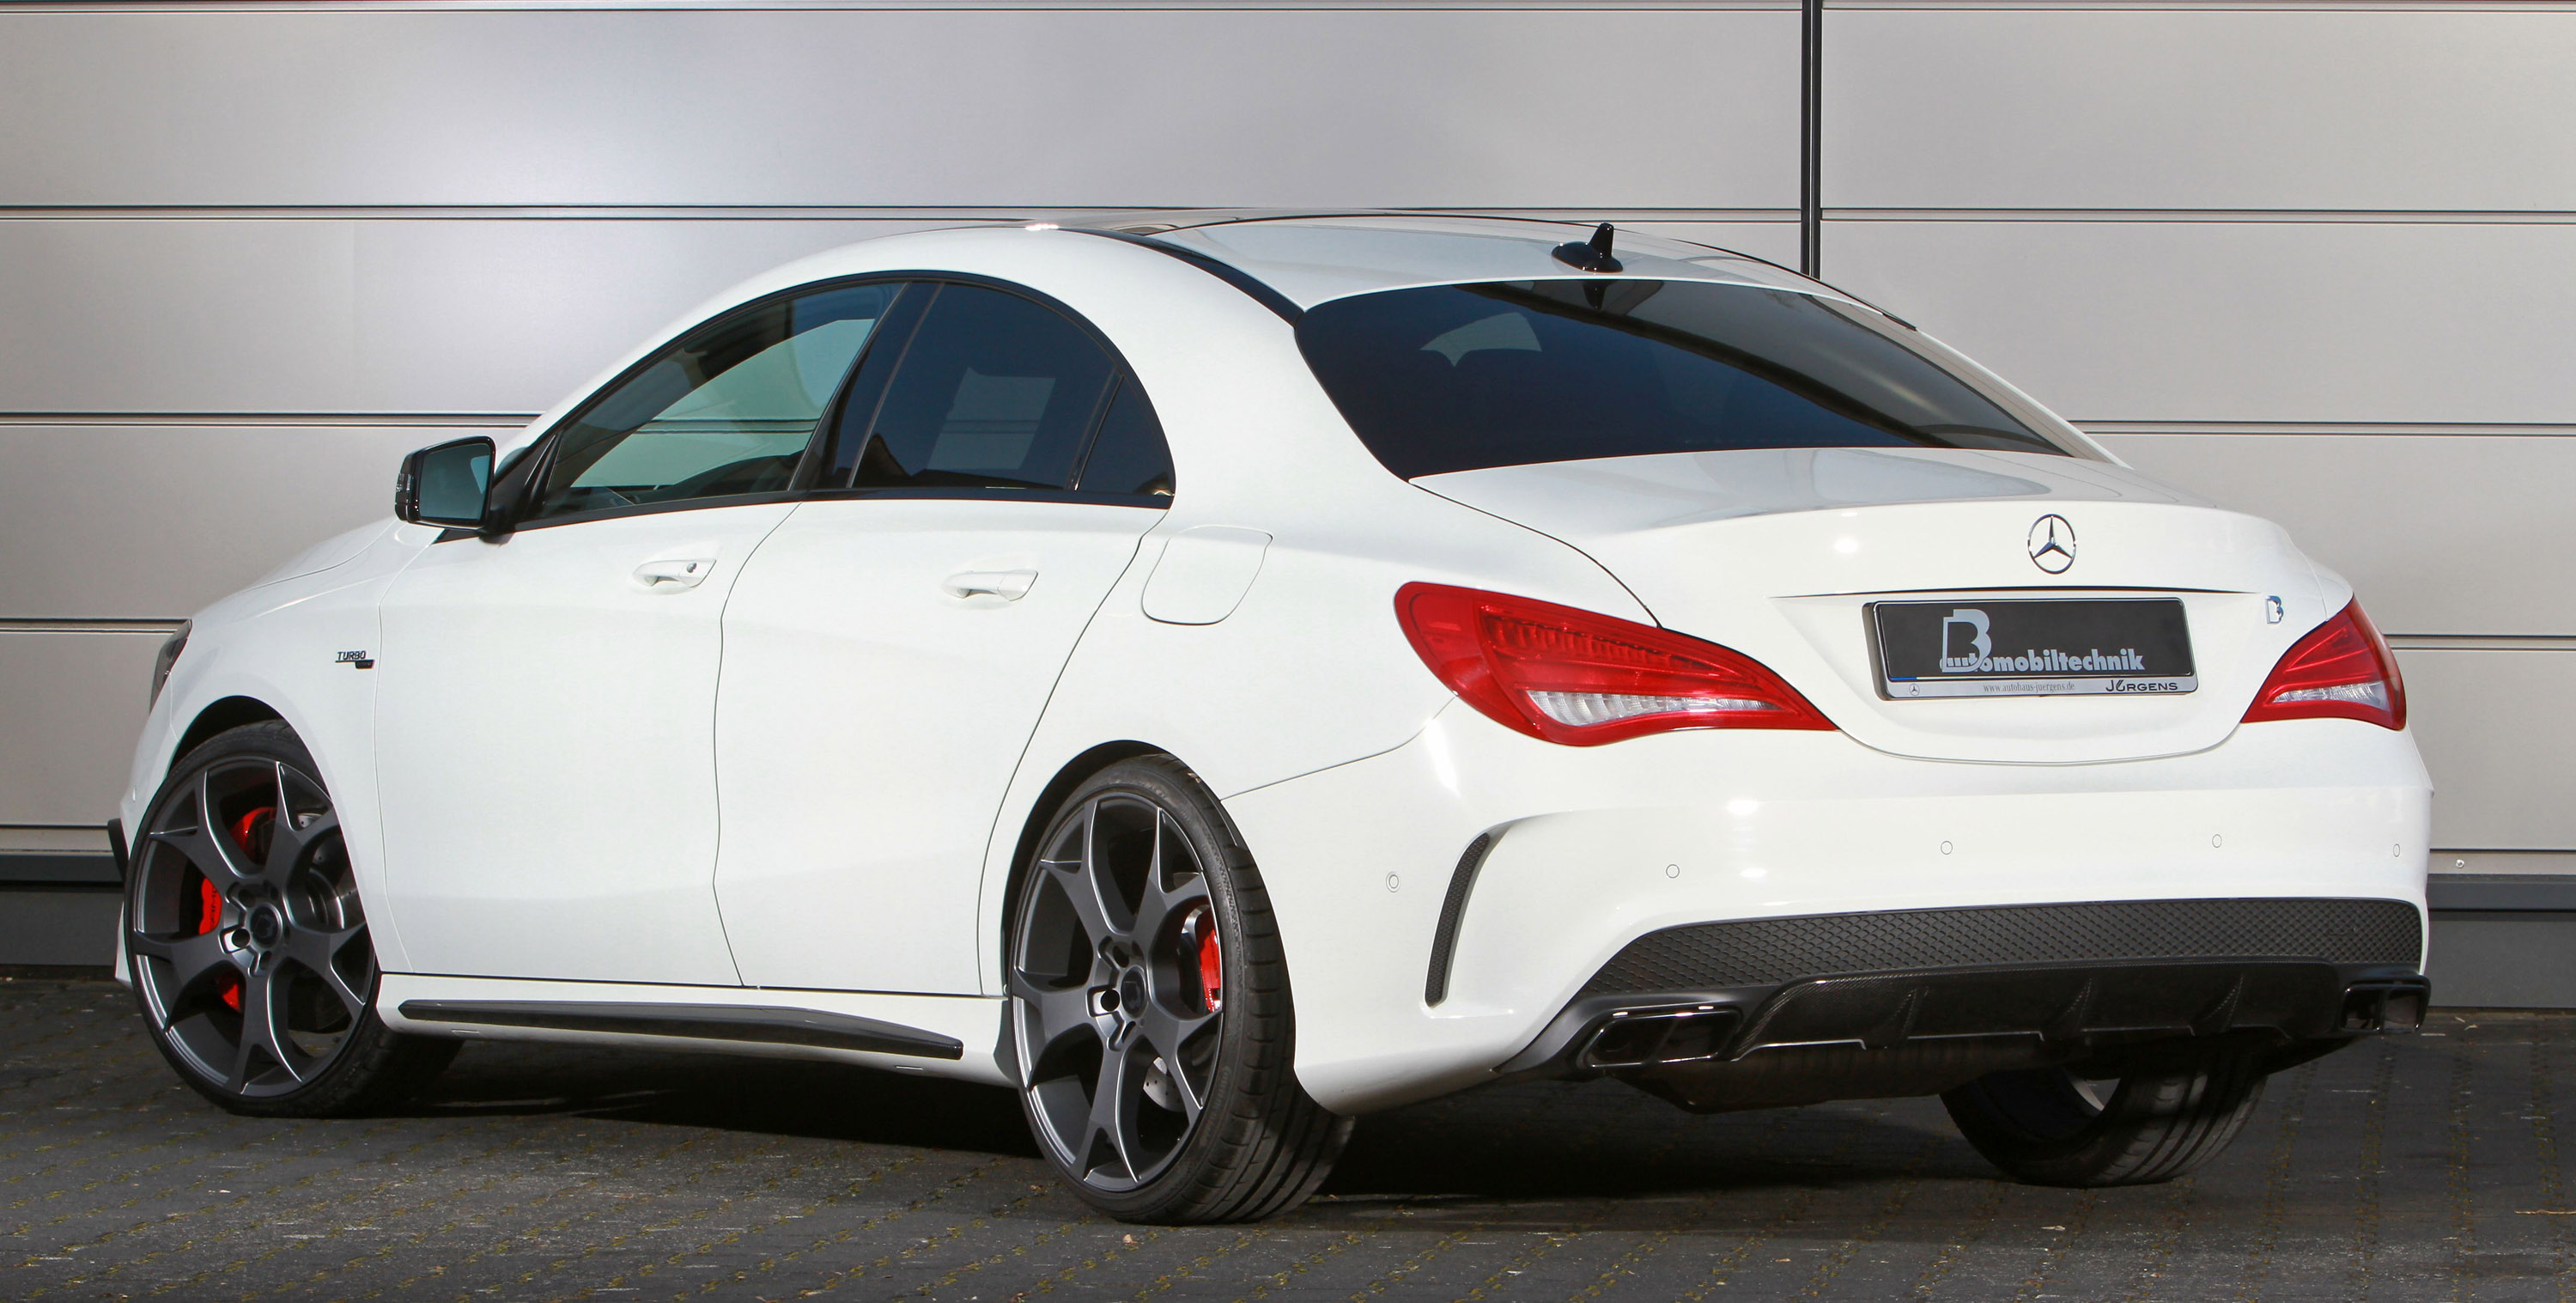 b b mercedes benz cla 45 amg is capable of up to 450 hp 580 nm. Black Bedroom Furniture Sets. Home Design Ideas